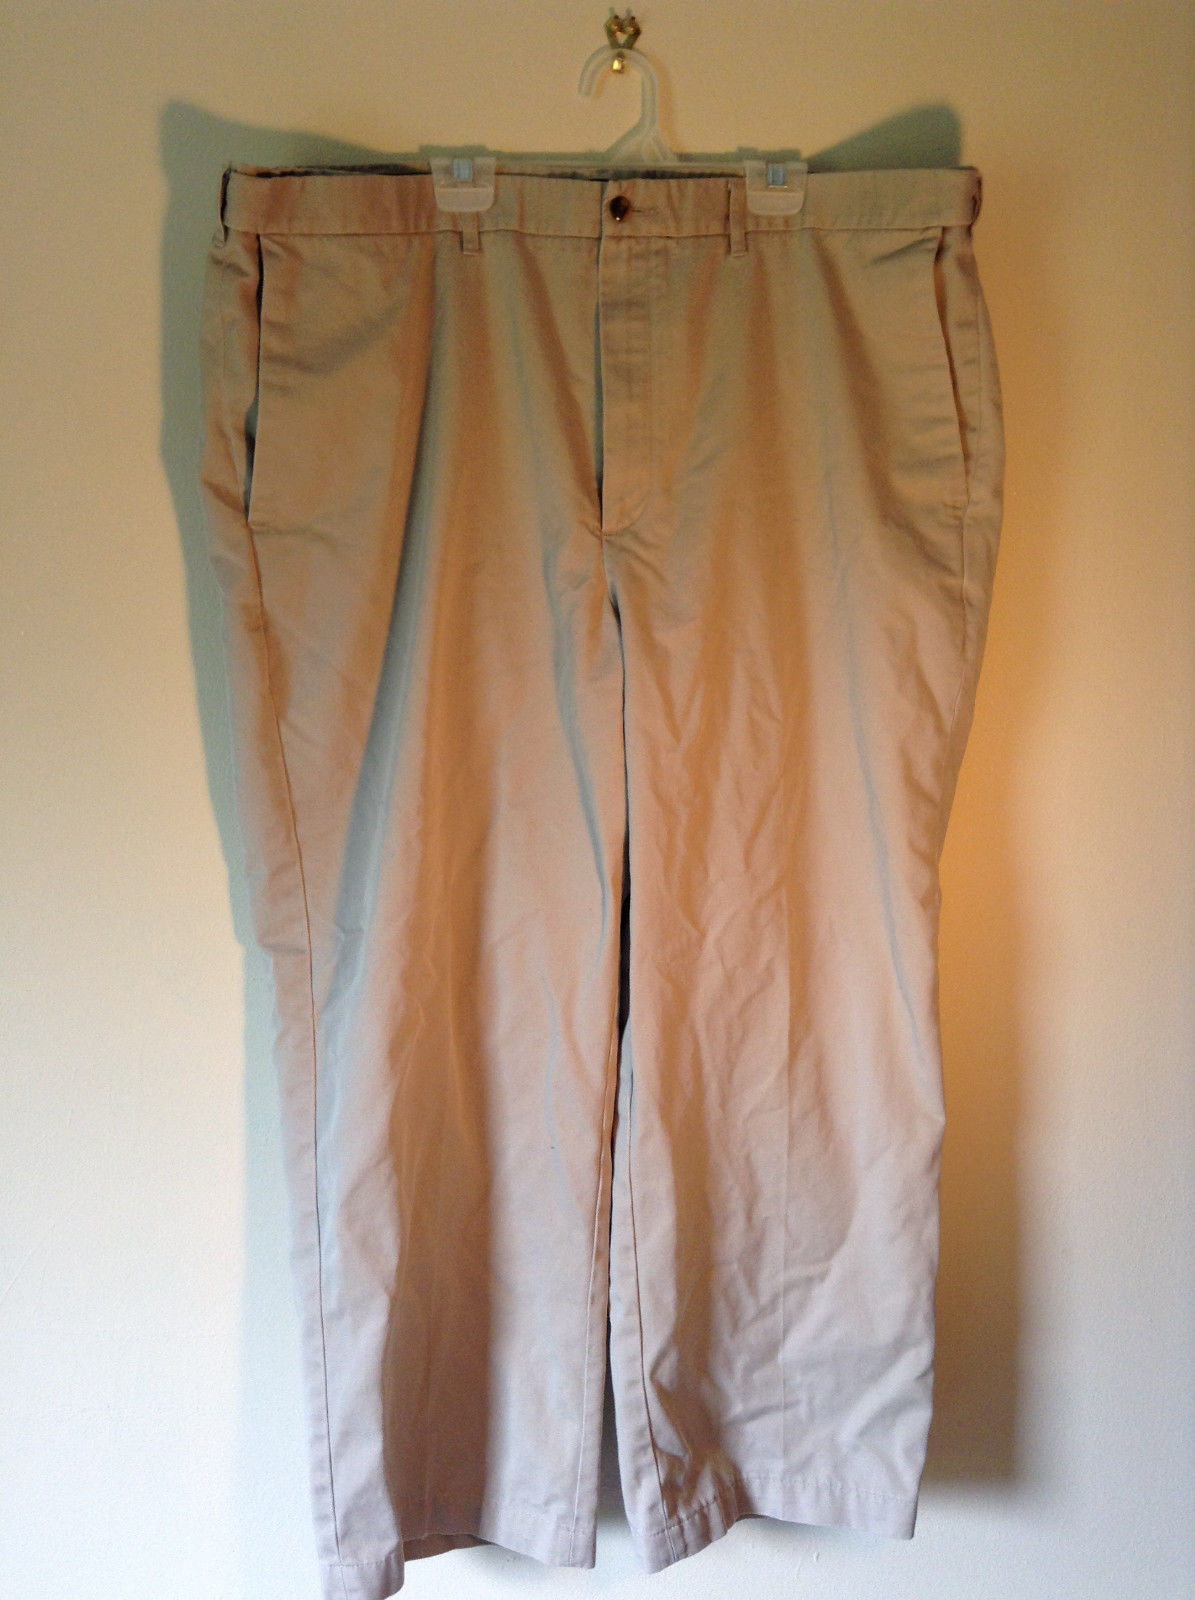 Haggar Khaki Casual Pants 2 Front Pockets Back Pockets Measurements Below